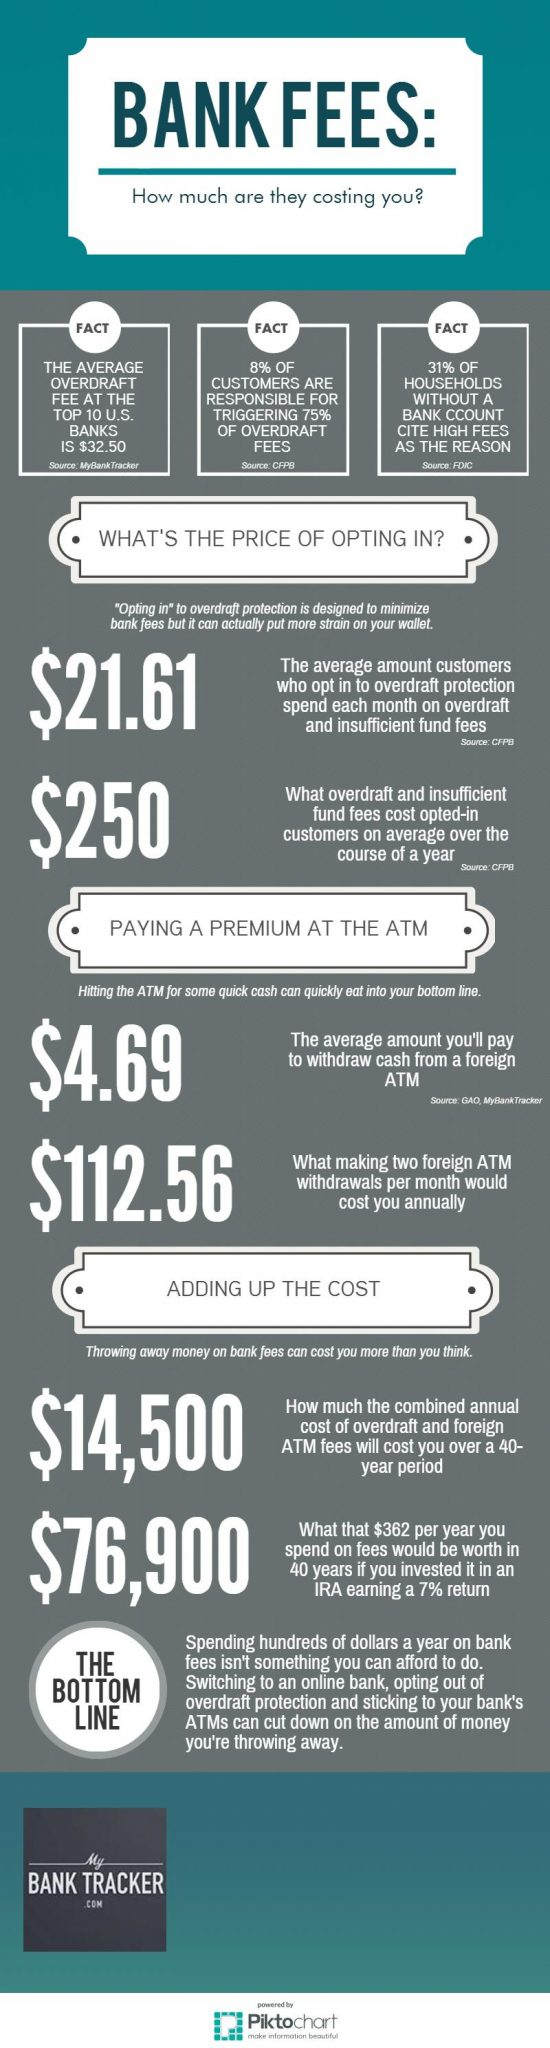 How Much Bank Fees Are Costing You Over a Lifetime | MyBankTracker